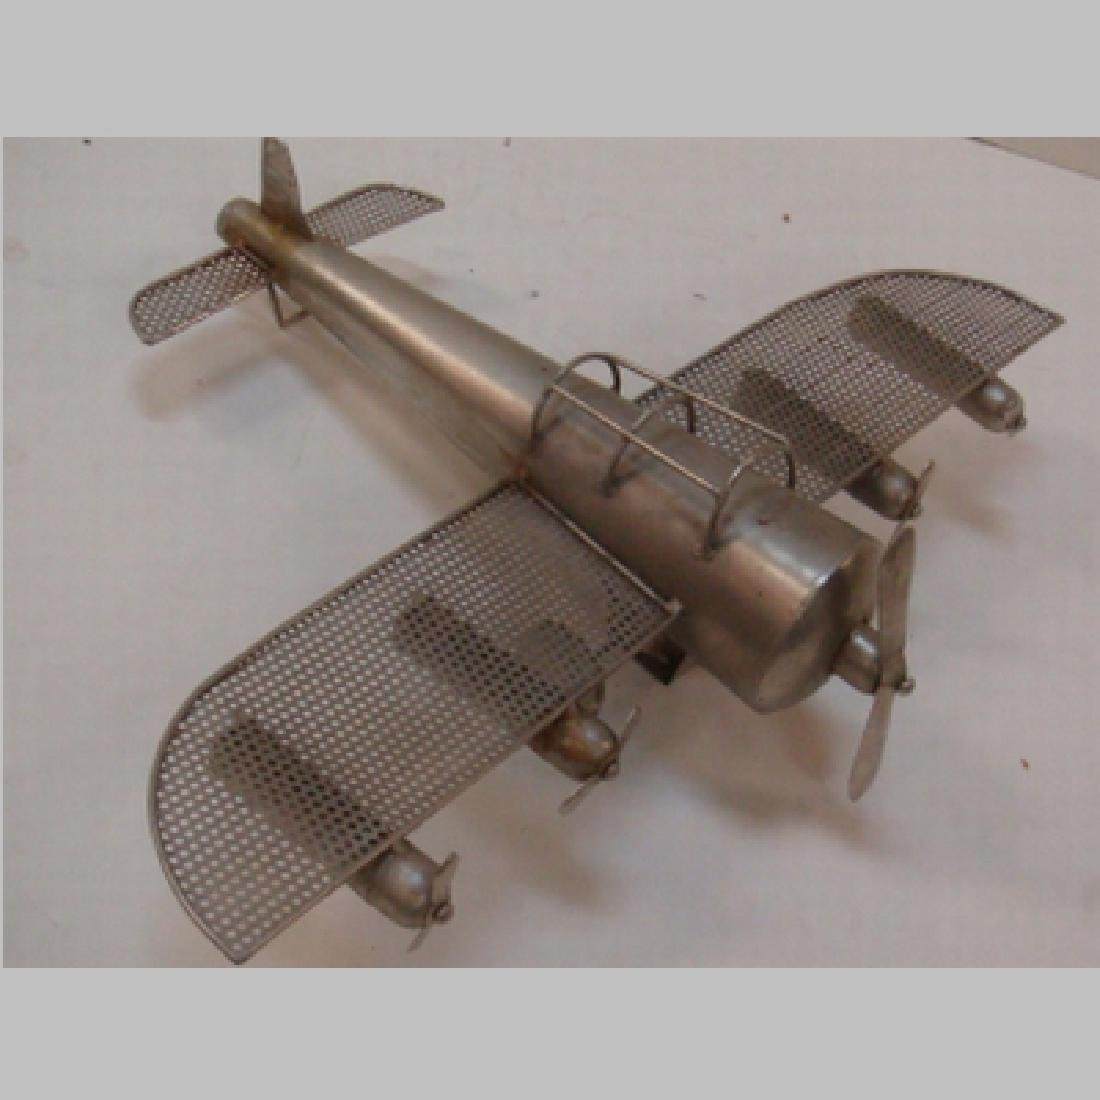 WW II Era Silver Metal Toy Five Engine Bomber: